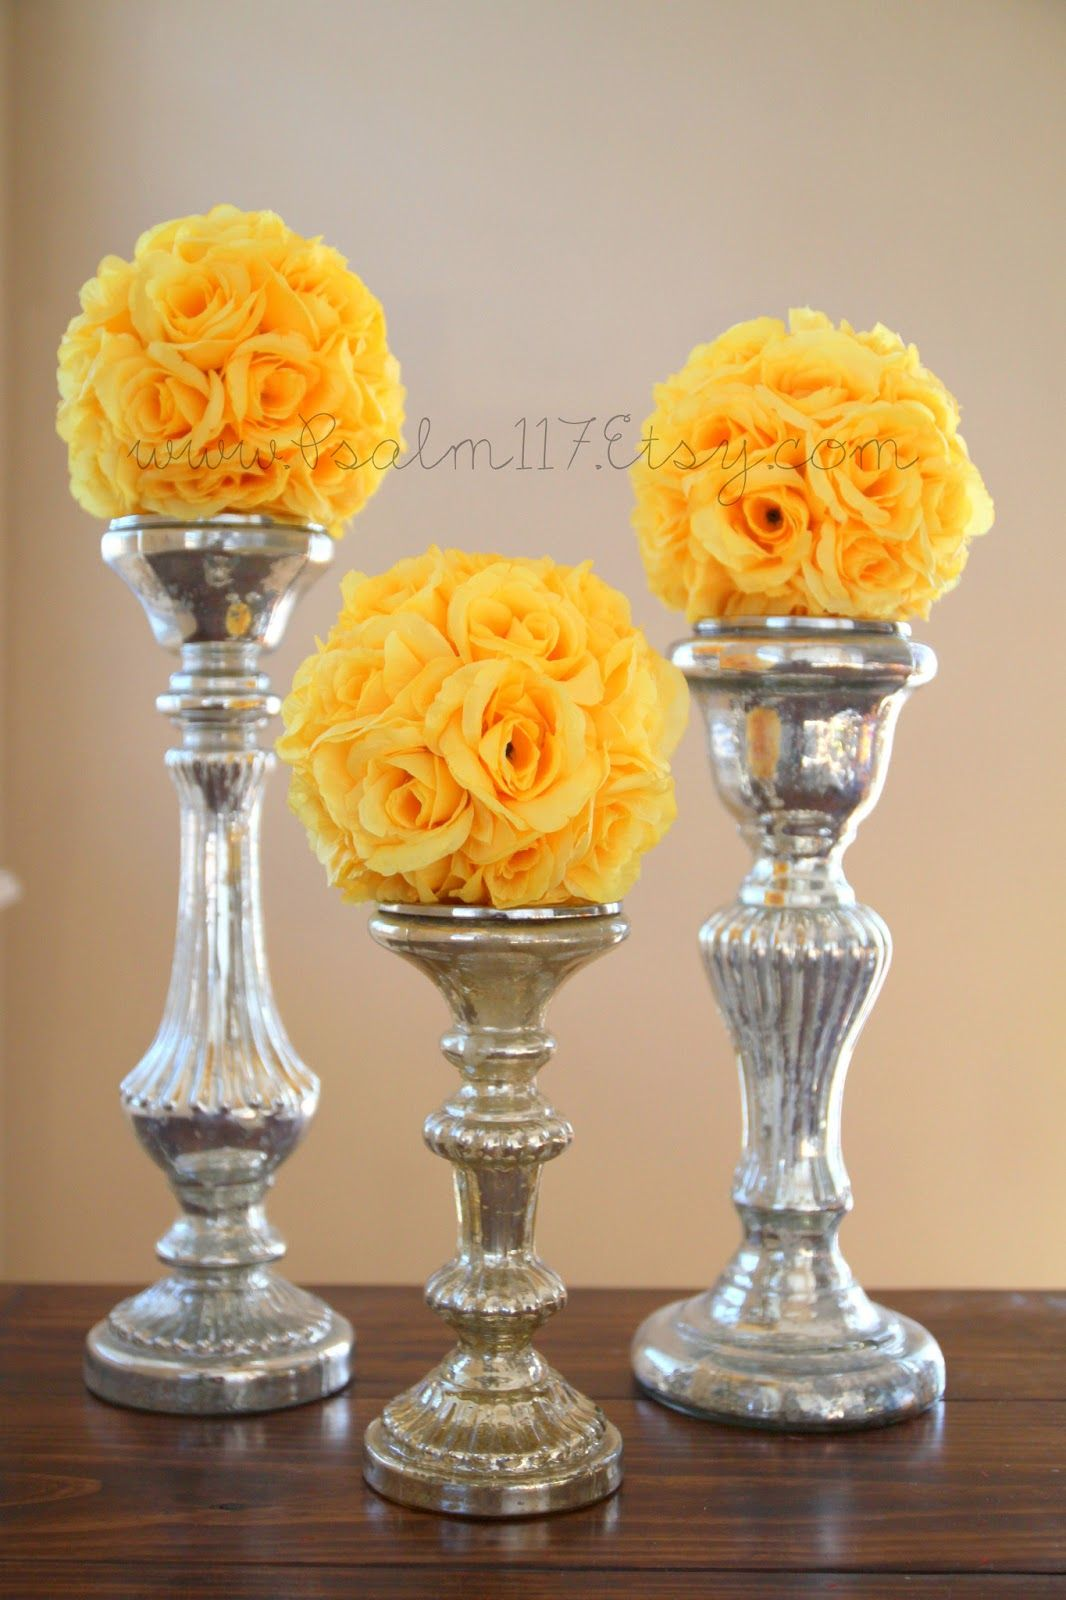 Flower Ball Centerpieces Inchrosepomanderweddingballsflower